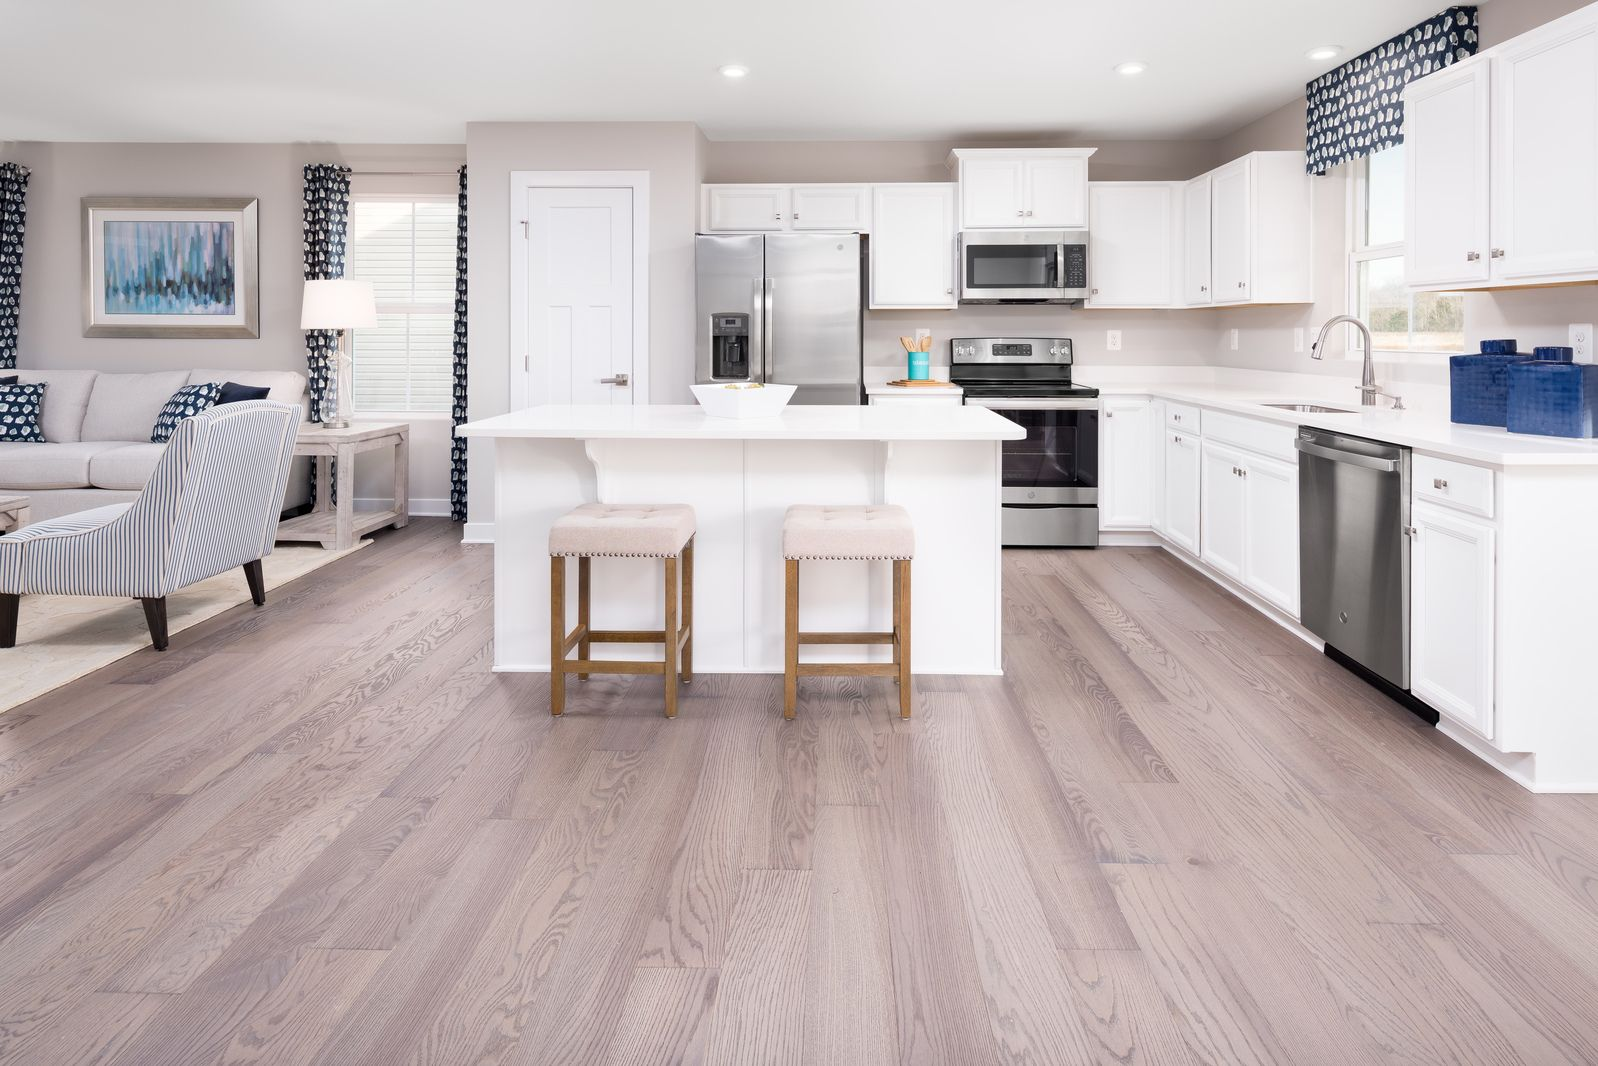 Kitchen featured in the Grand Cayman By Ryan Homes in Pittsburgh, PA